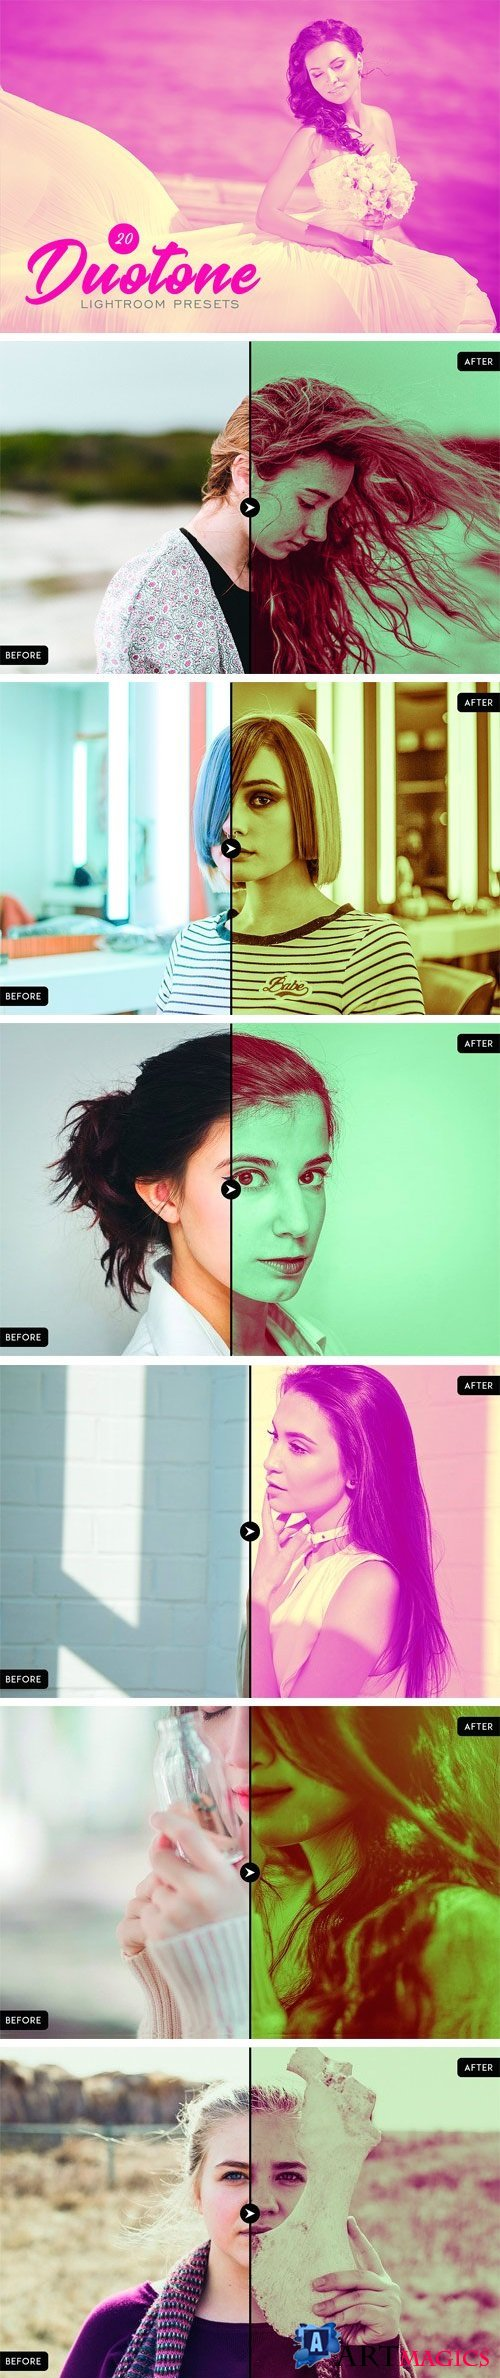 20 Duotone Lightroom Presets 1865684